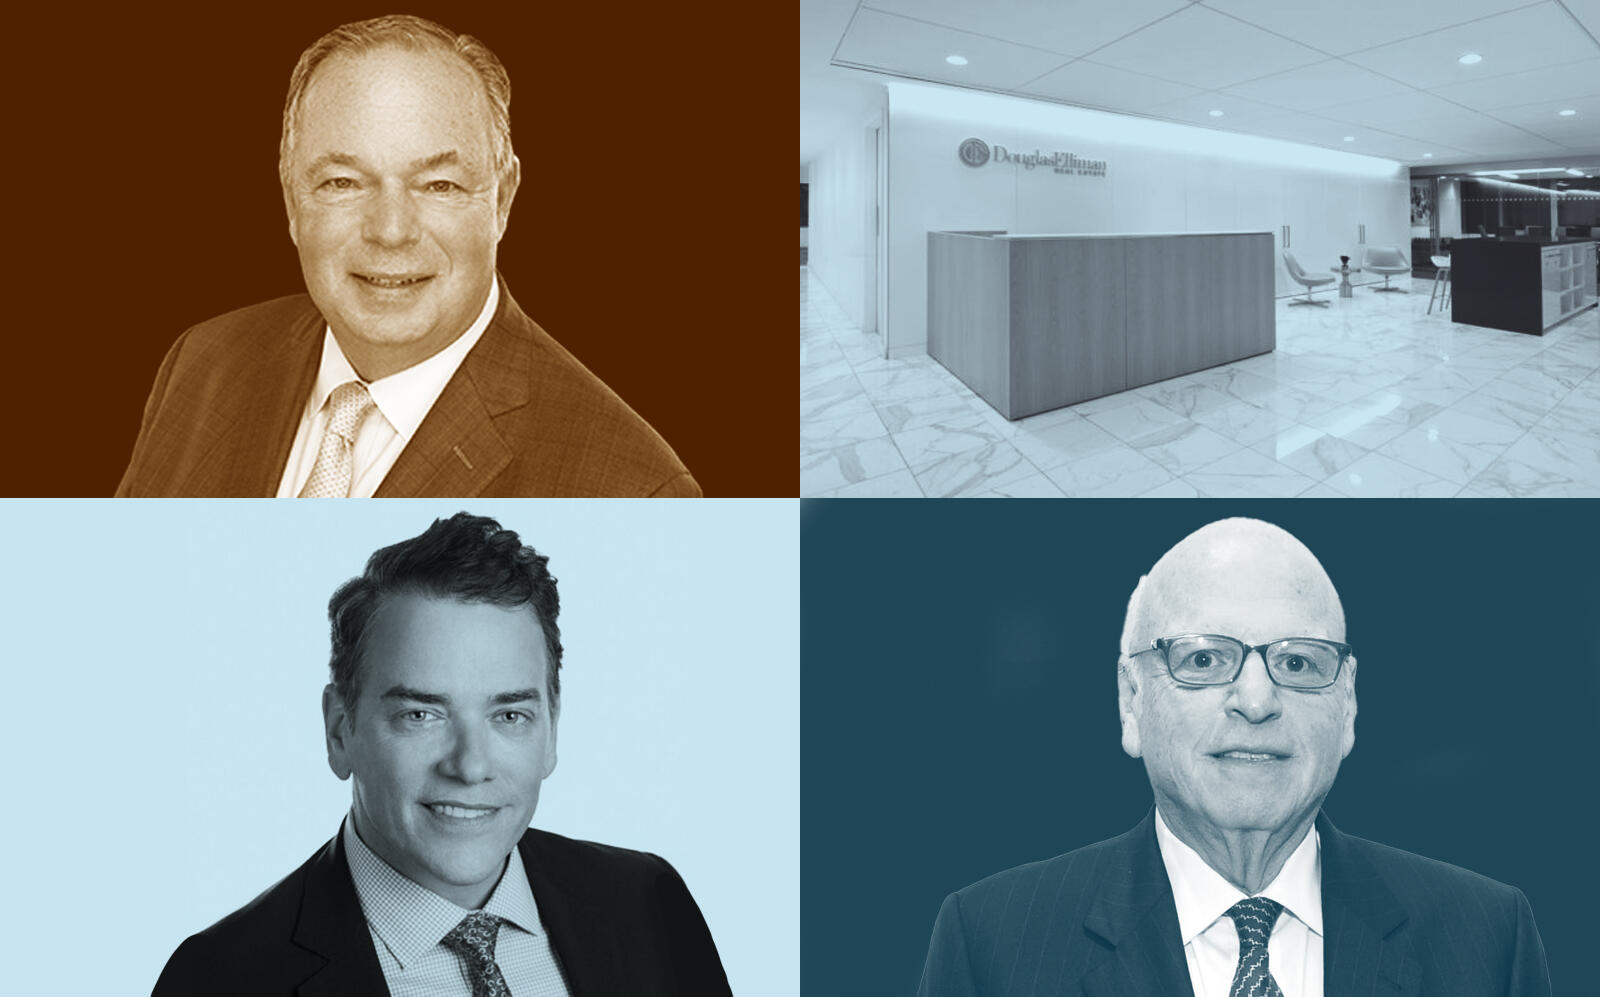 Clockwise from top left: Richard Ferrari, Elliman's flagship NYC office at 575 Madison Avenue, Elliman's Executive Chairman Howard Lorber and Elliman's president and COO Scott Durkin